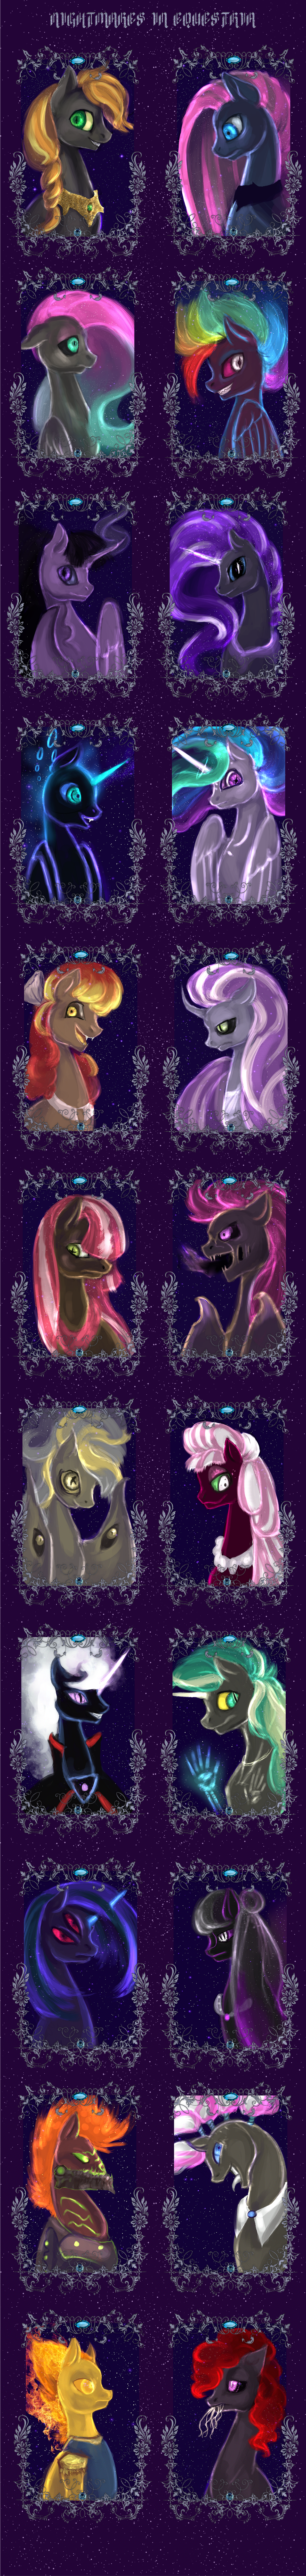 Nightmares in equestria by ElkaArt